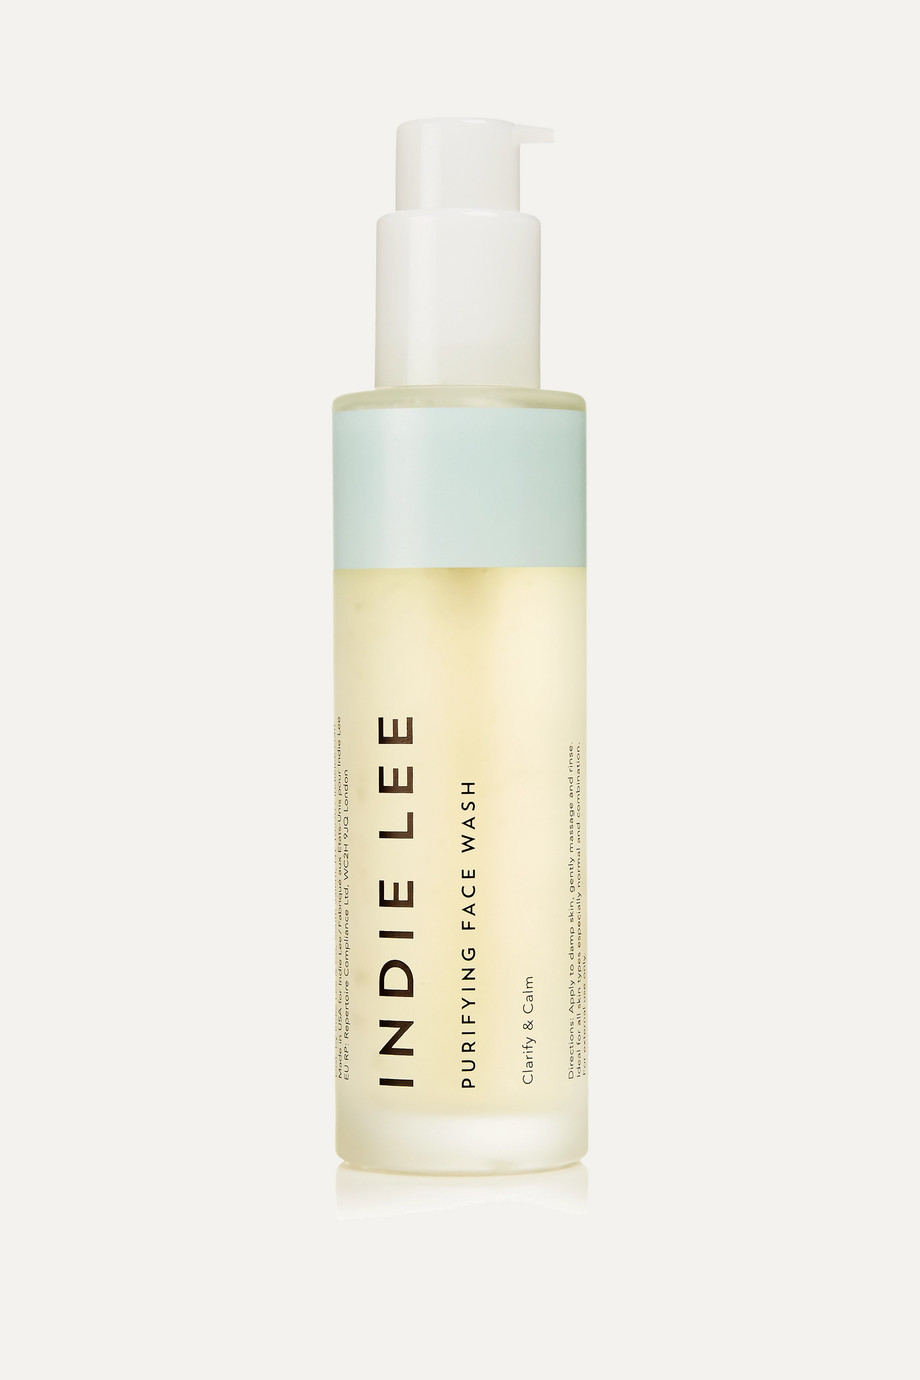 Indie Lee Purifying Face Wash, 125ml